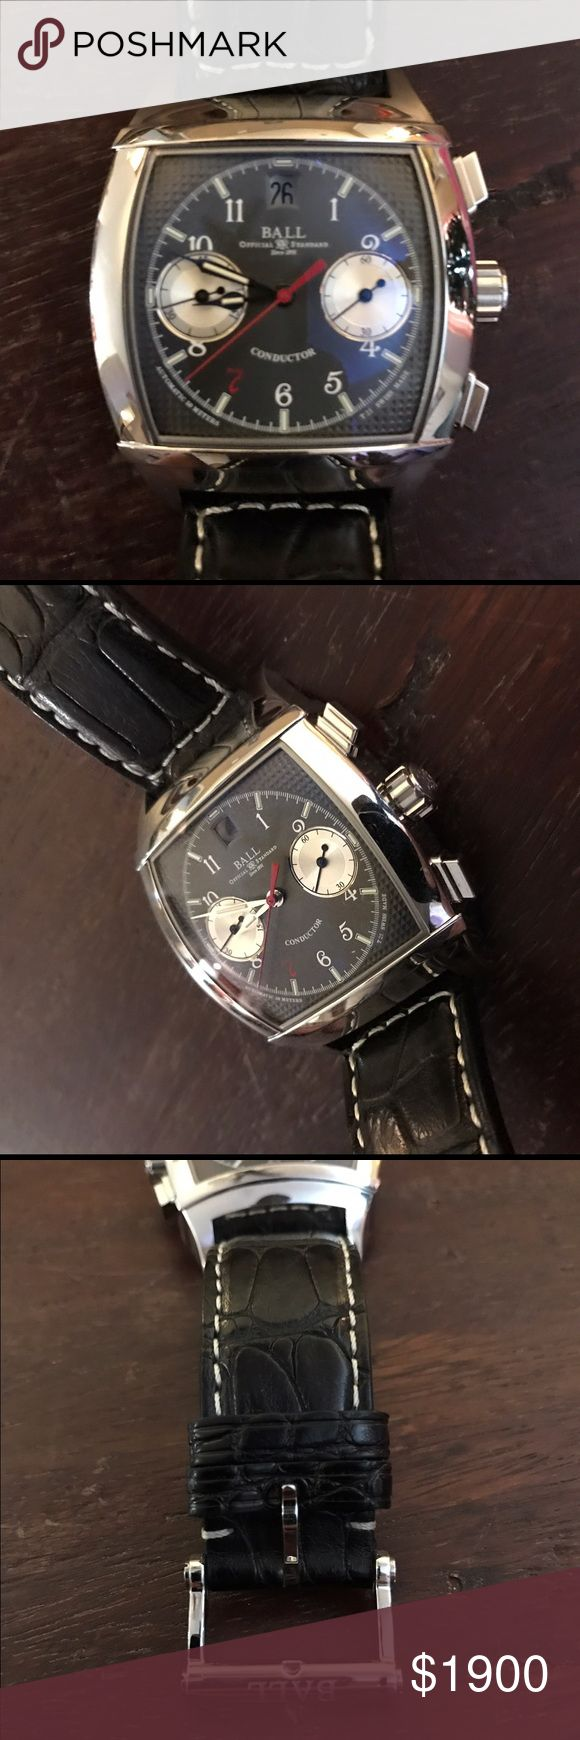 Ball Conductor Vanderbilt watch Beautiful dress watch with polished case and black crocodile strap. Worn only a handful of times, and has minimal signs of wear. Comes with original box and paperwork! Ball Watch Co Accessories Watches